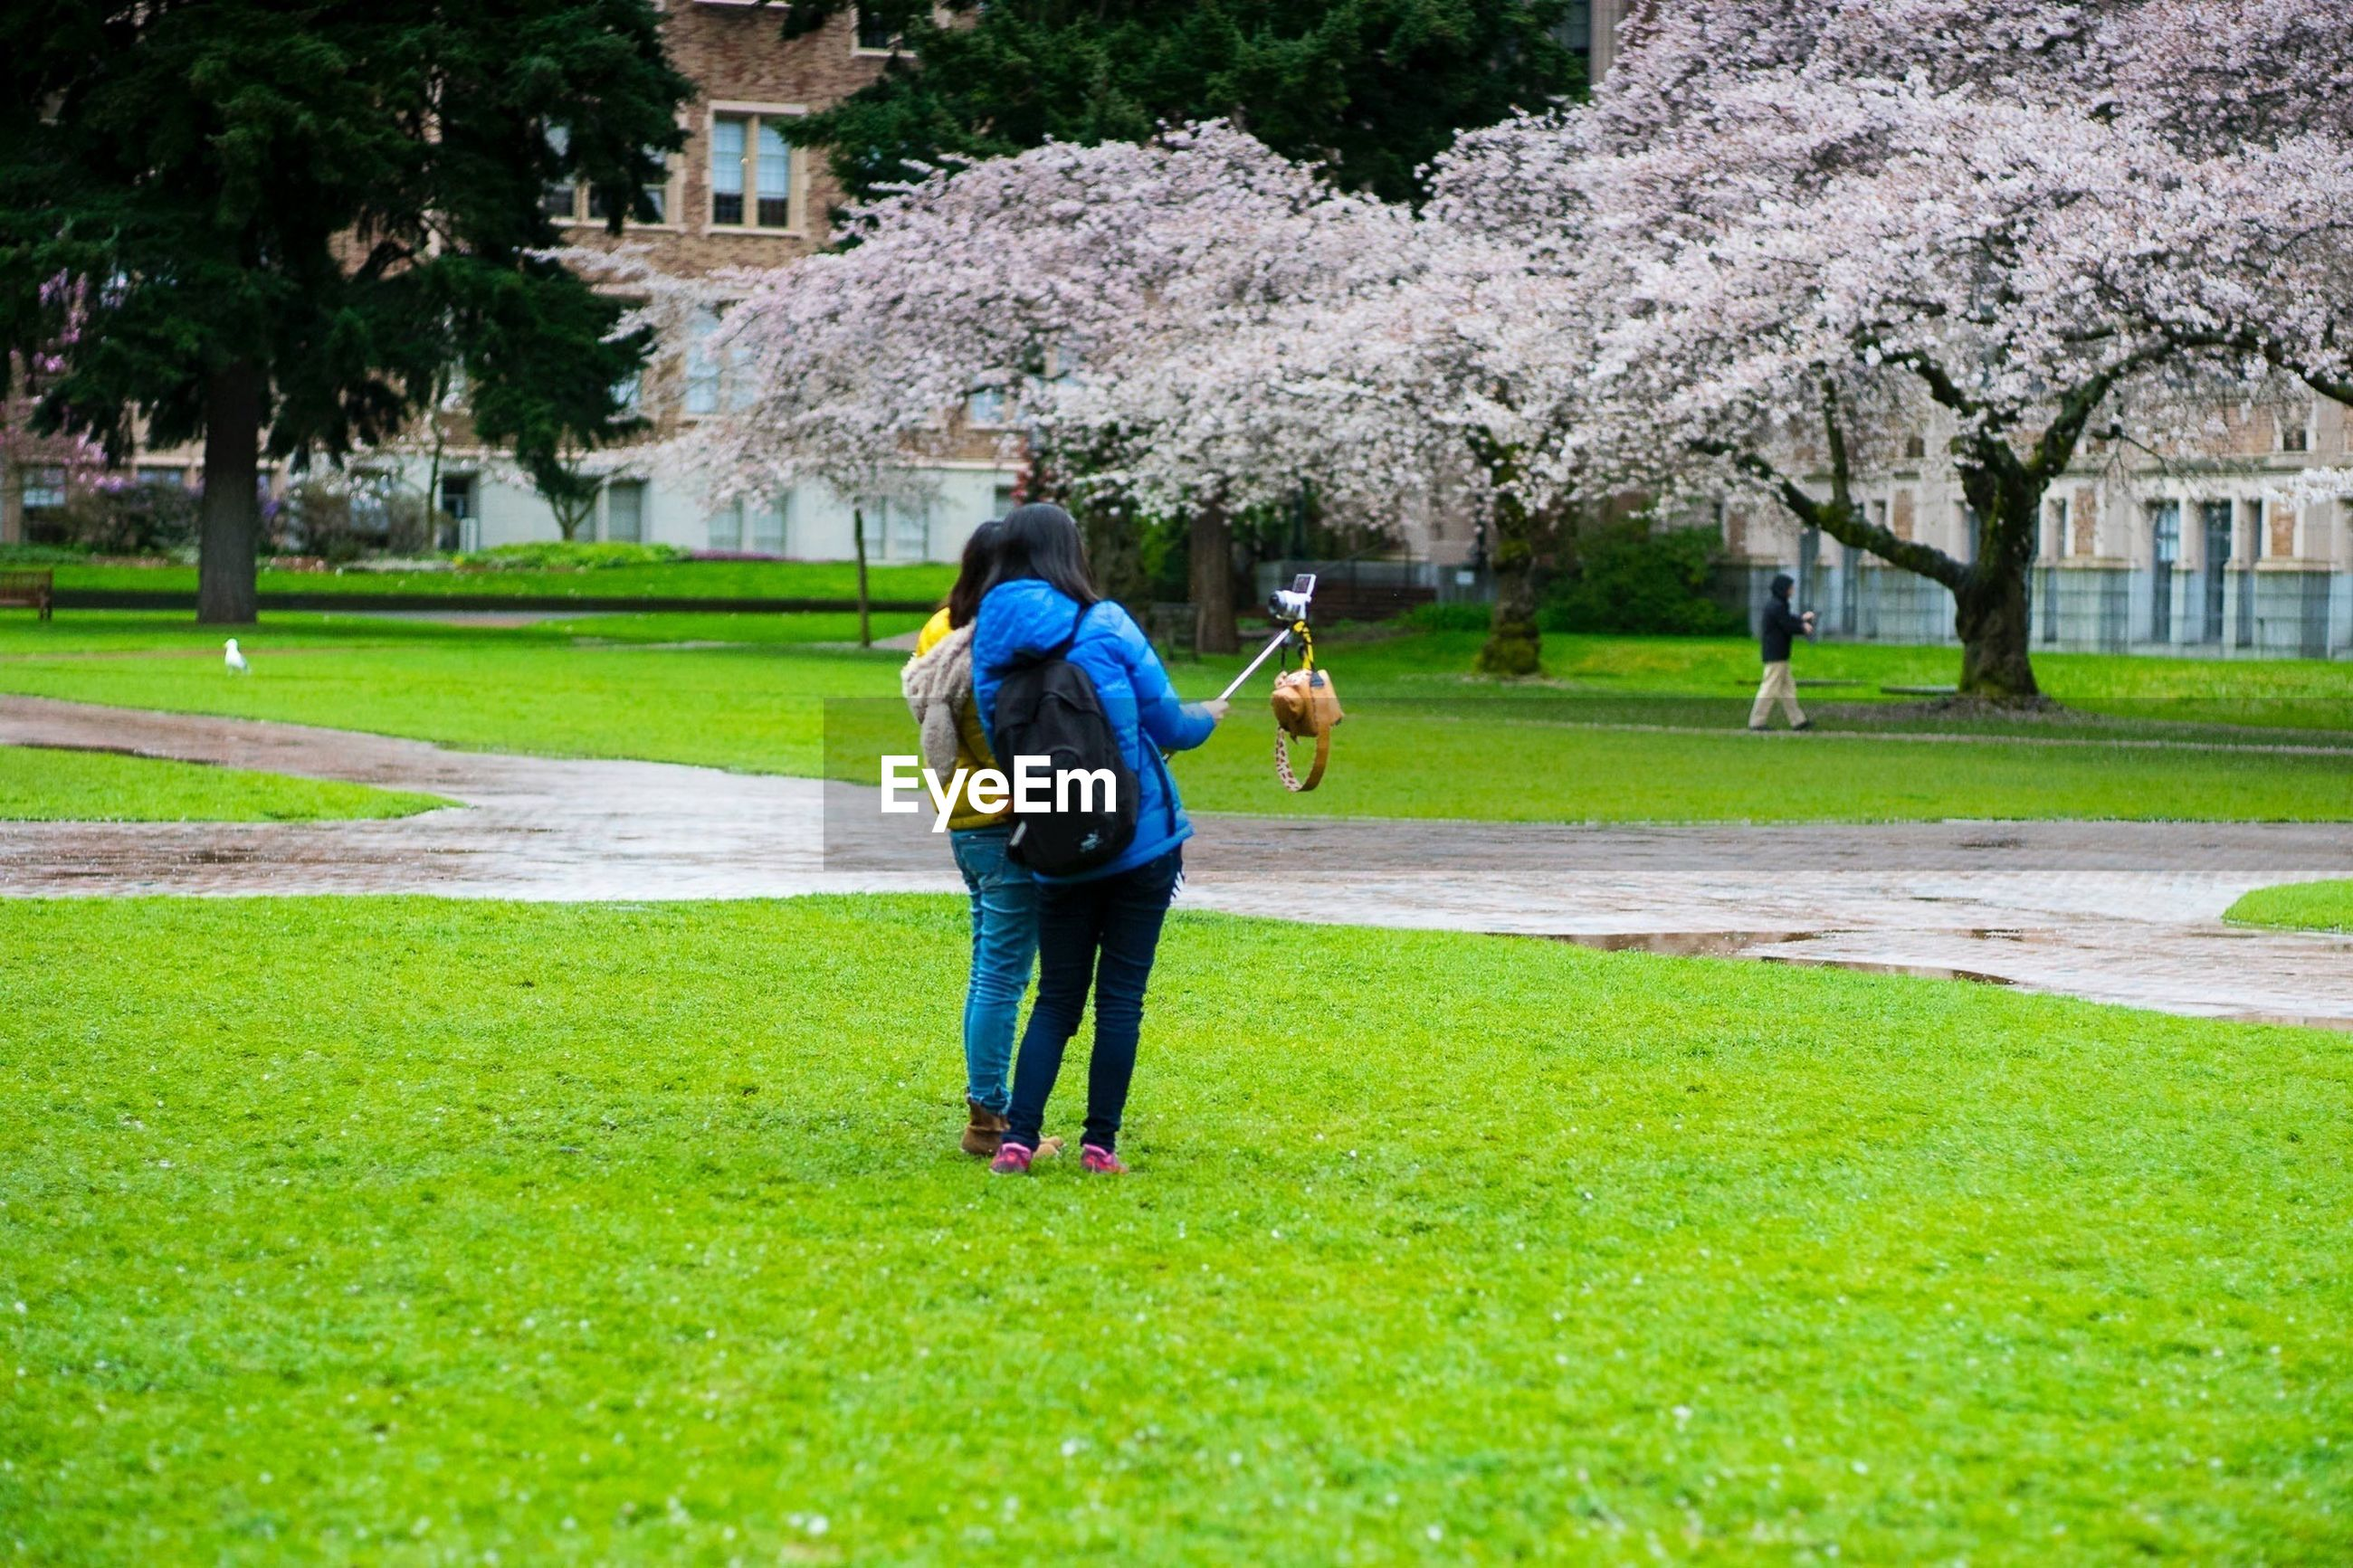 grass, full length, lifestyles, leisure activity, green color, casual clothing, tree, park - man made space, lawn, field, childhood, grassy, girls, person, building exterior, boys, rear view, park